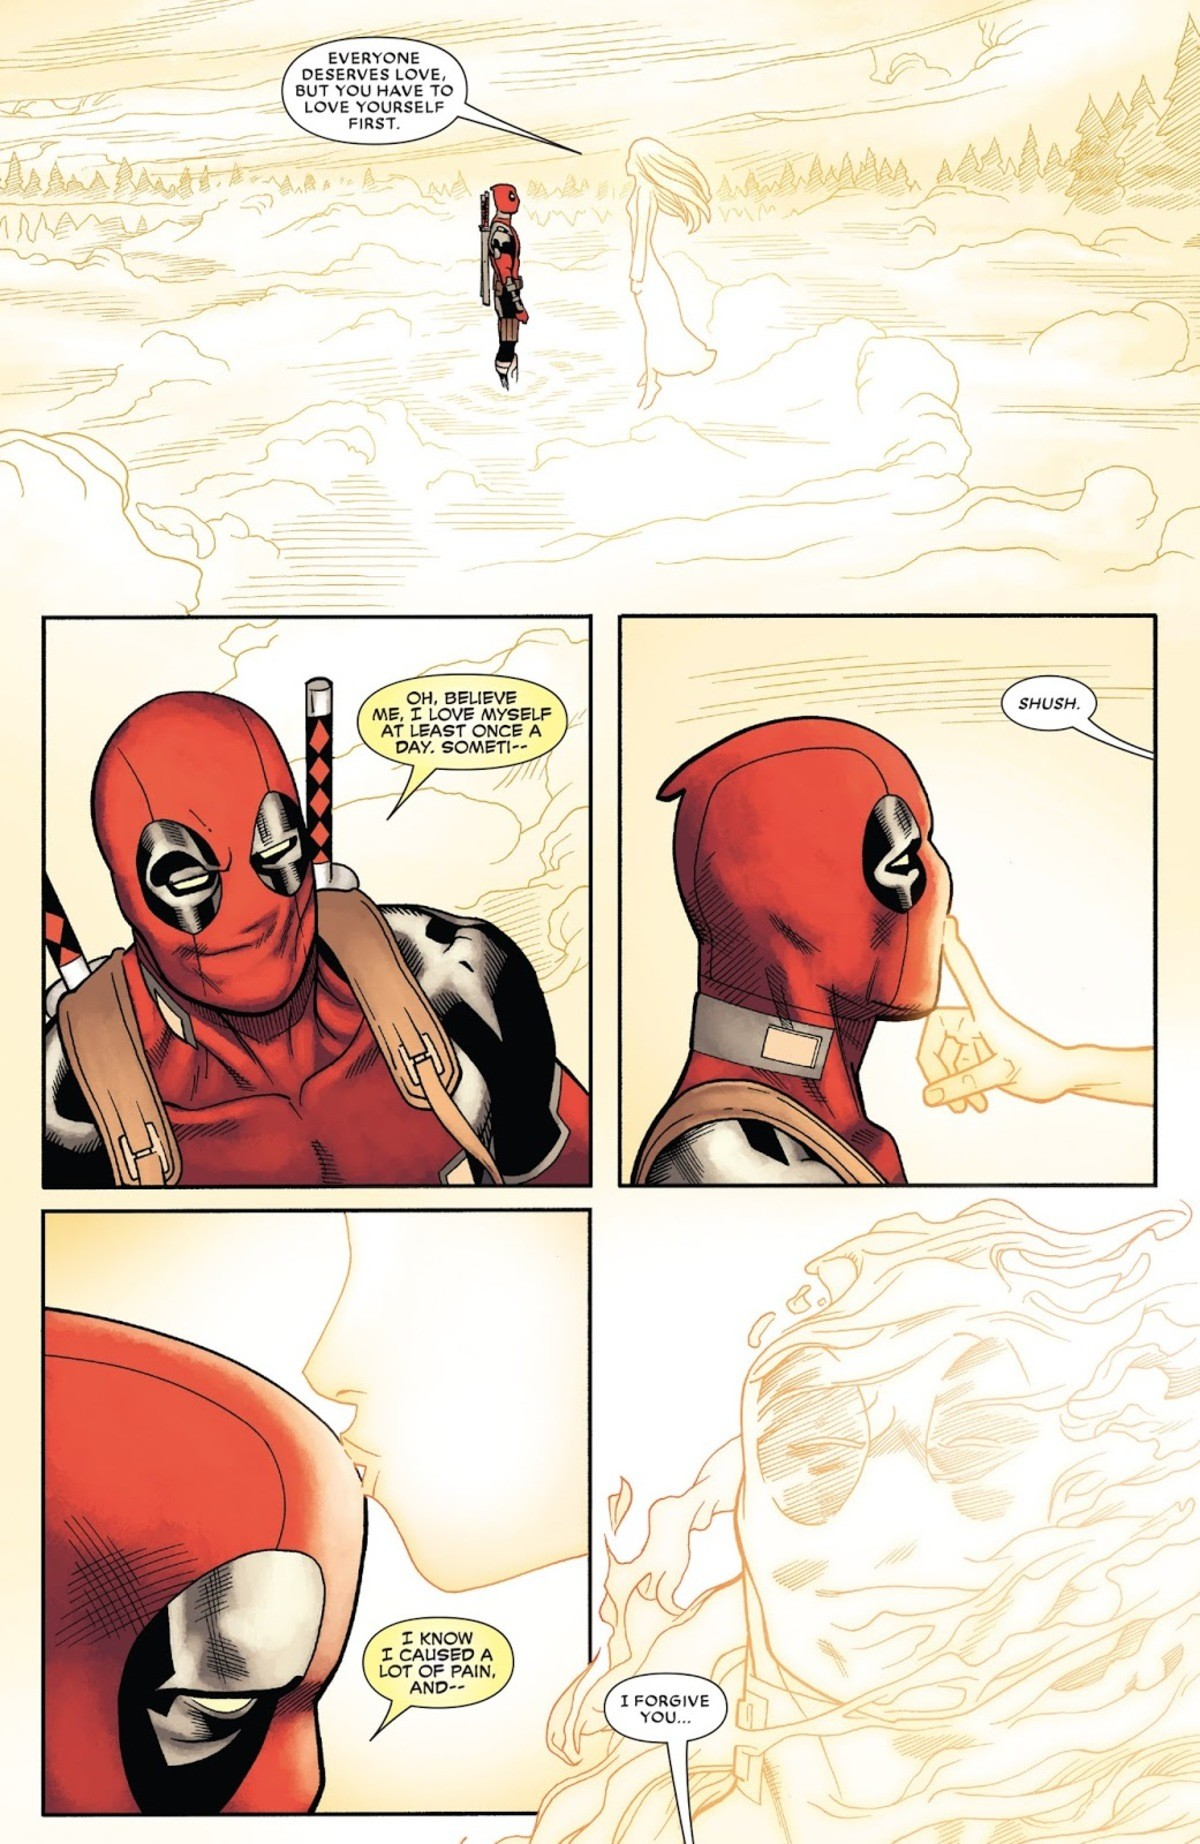 DugganPool is Dead. This is last issue, by the way http://readcomiconline.to/Comic/Despicable-Deadpool. EVERYONE DESERVES LOVE, BUT YOU HAVE TO LOVE YOURSELF FI